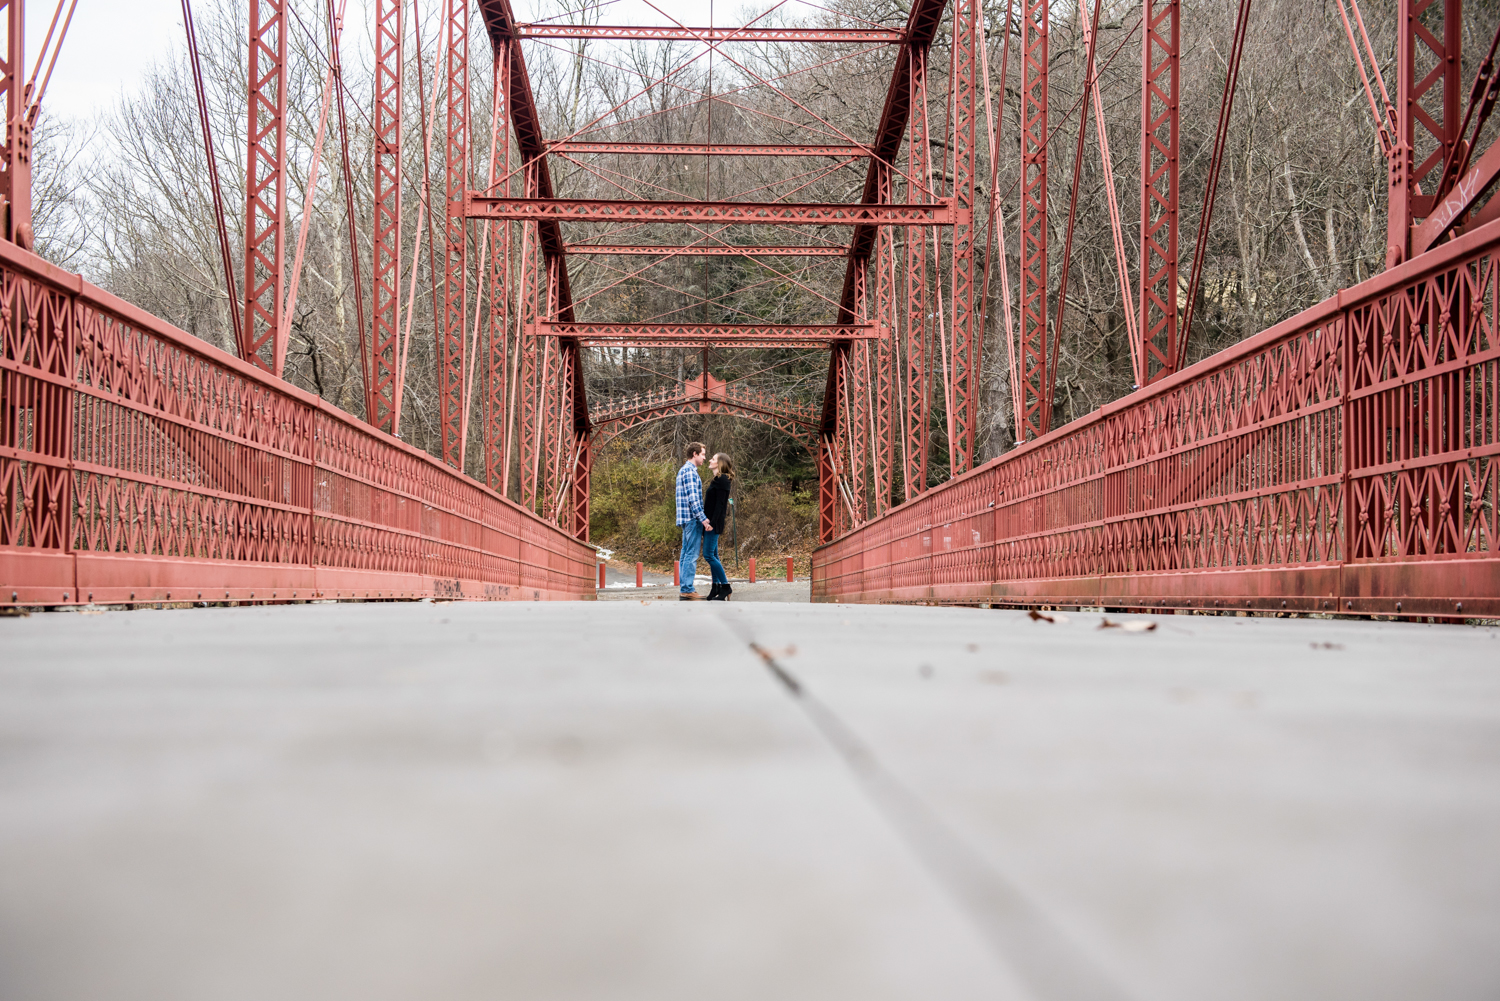 lovers-leap-park-engagement-session-new-milford-ct-1.jpg